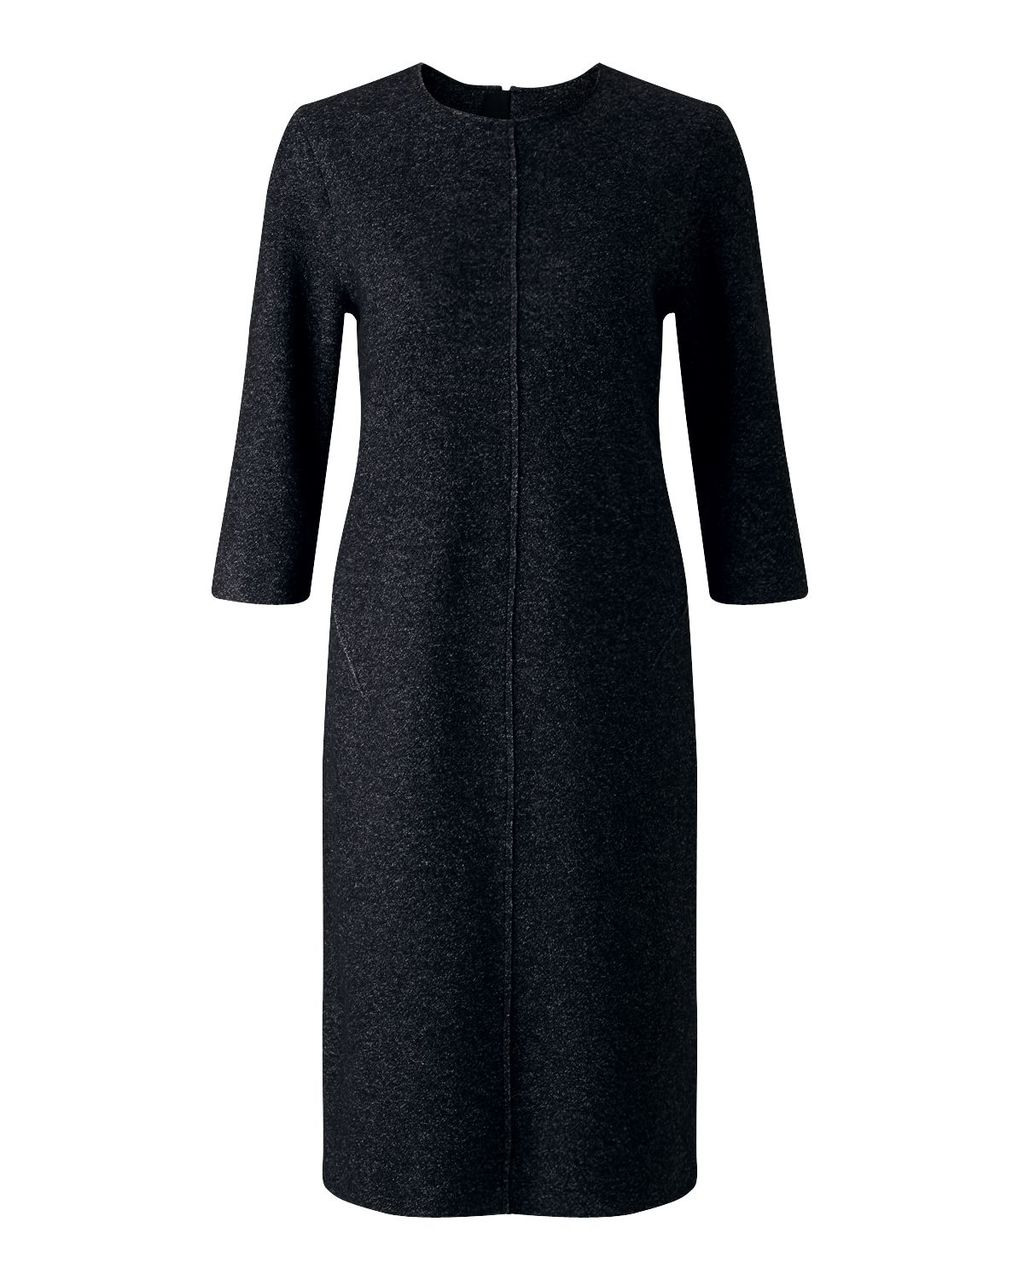 Speckled Wool Knitted Dress, Charcoal - style: shift; pattern: plain; predominant colour: black; occasions: evening; length: on the knee; fit: body skimming; fibres: wool - 100%; neckline: crew; sleeve length: 3/4 length; sleeve style: standard; texture group: knits/crochet; pattern type: fabric; season: a/w 2016